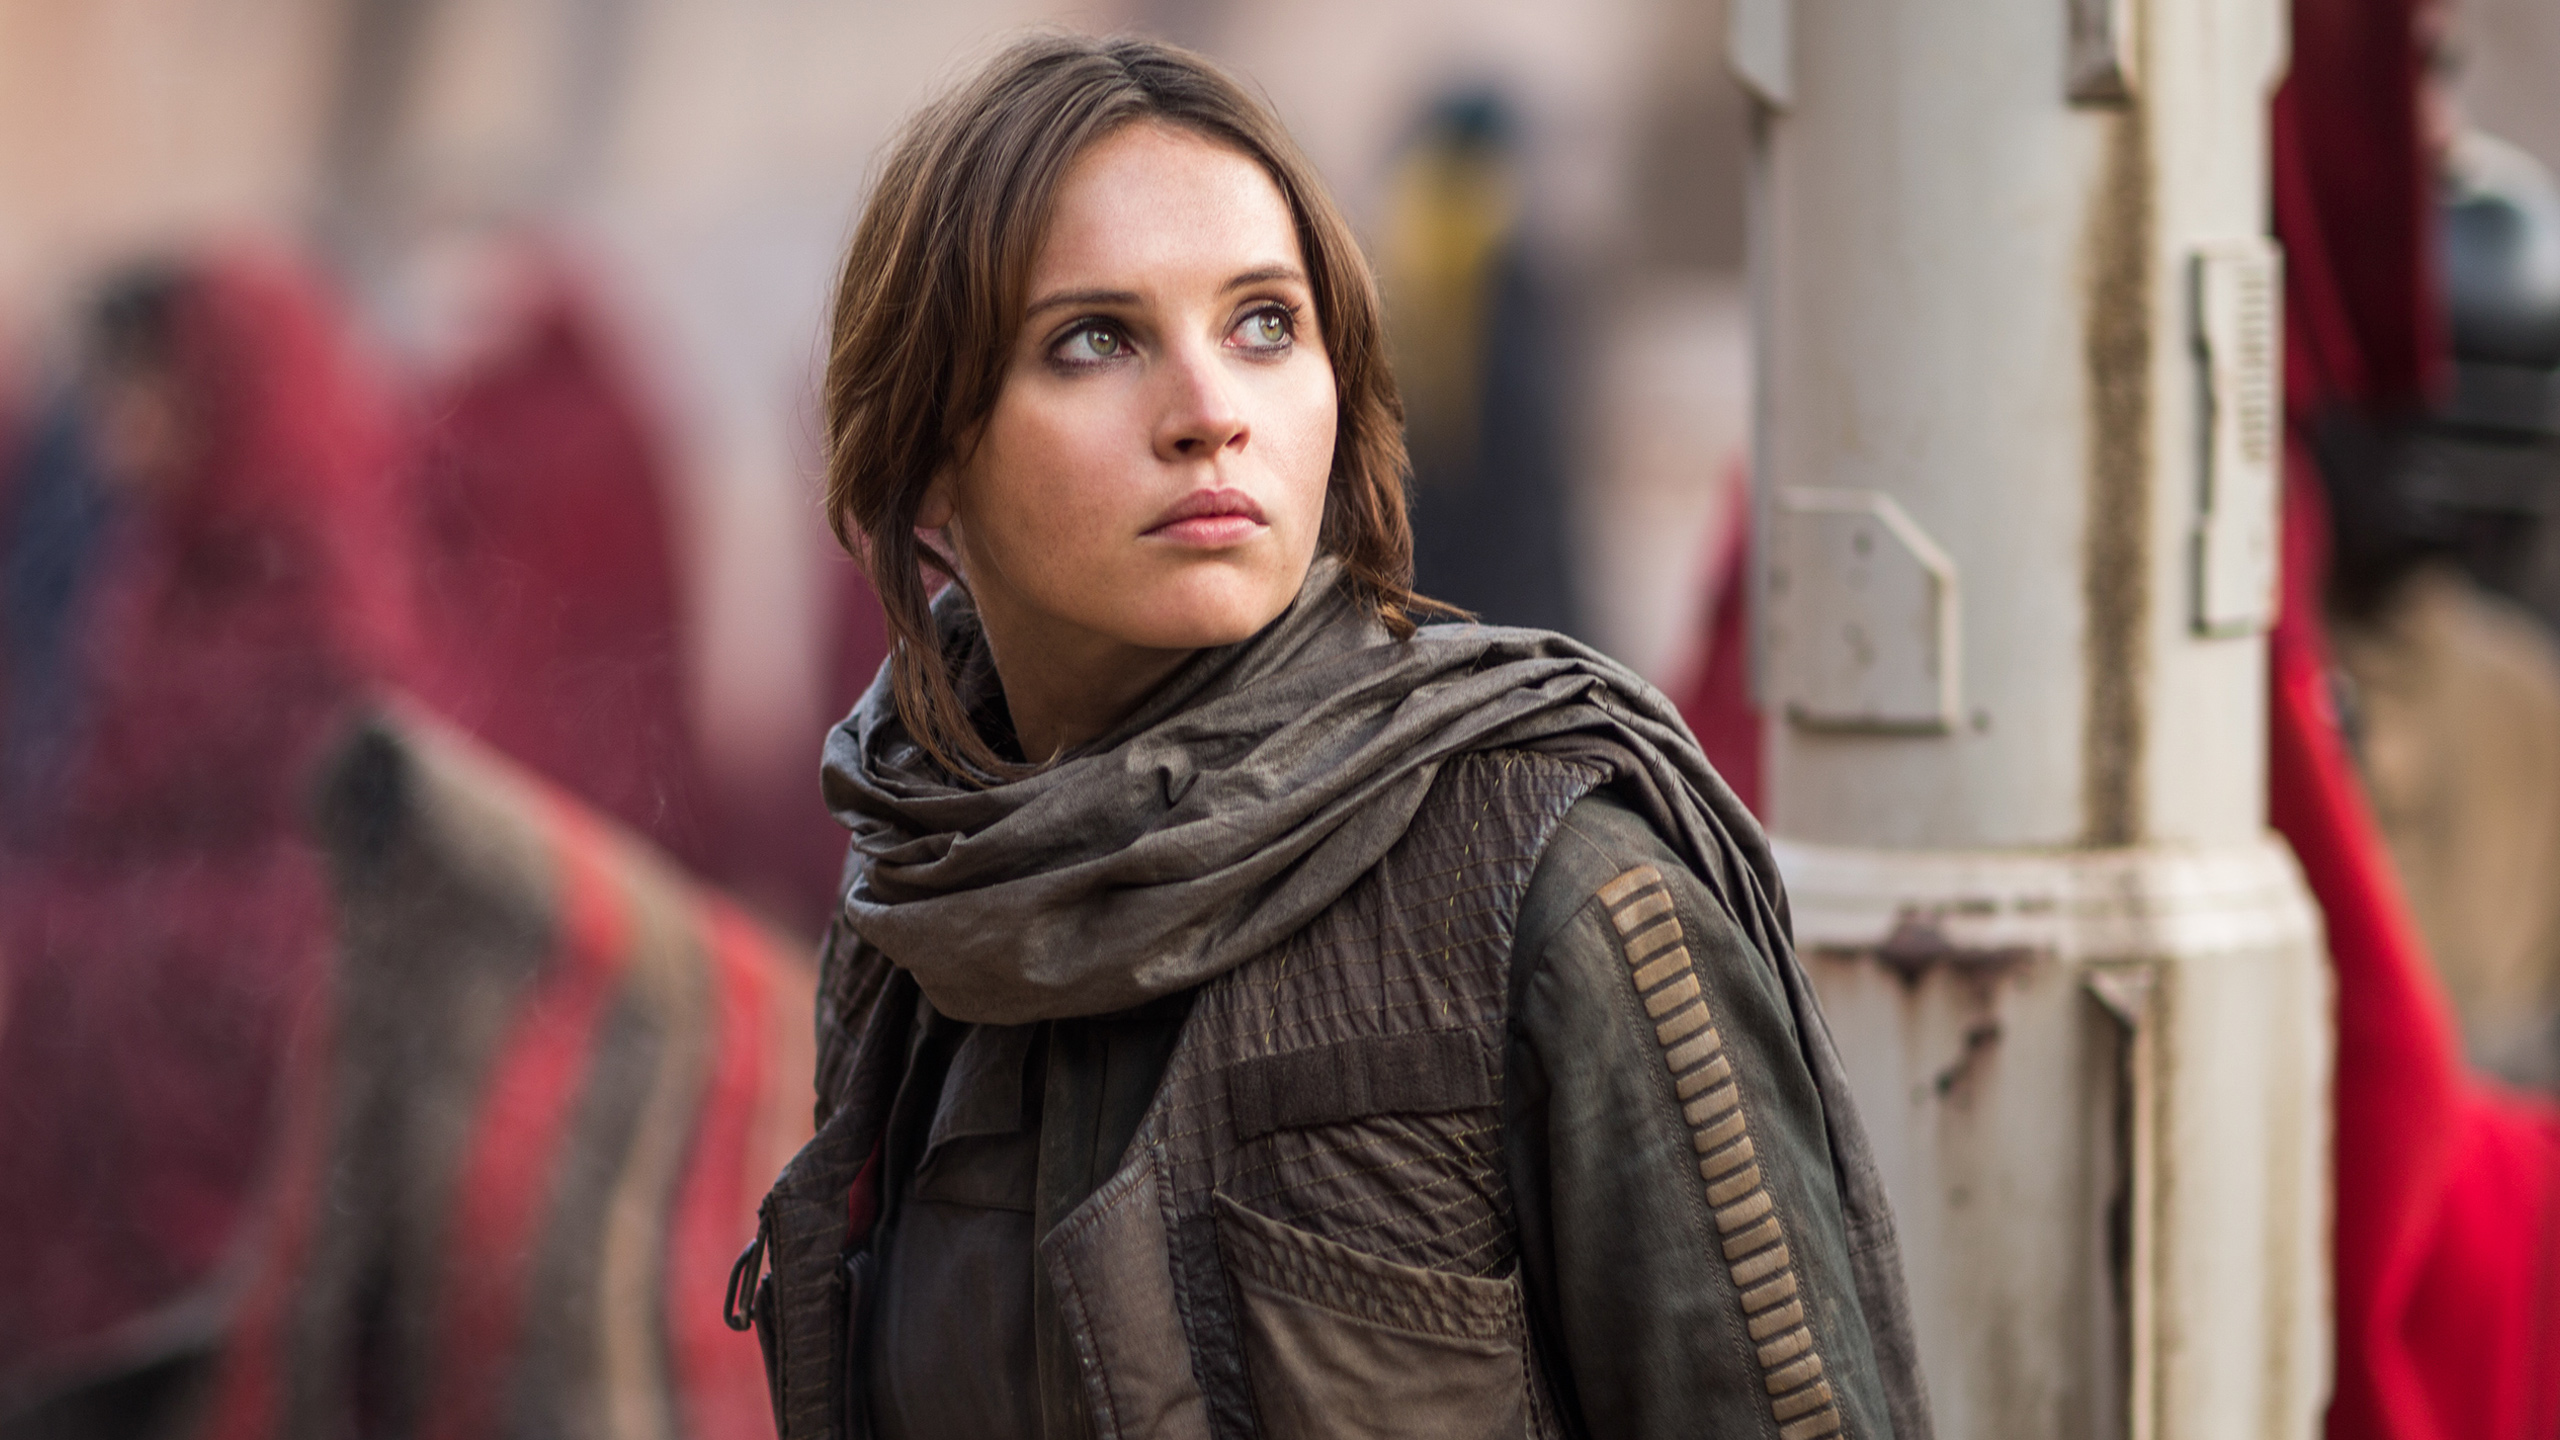 Felicity Jones As Jyn Erso In Rogue One Star Wars Hd Movies 4k Wallpapers Images Backgrounds Photos And Pictures